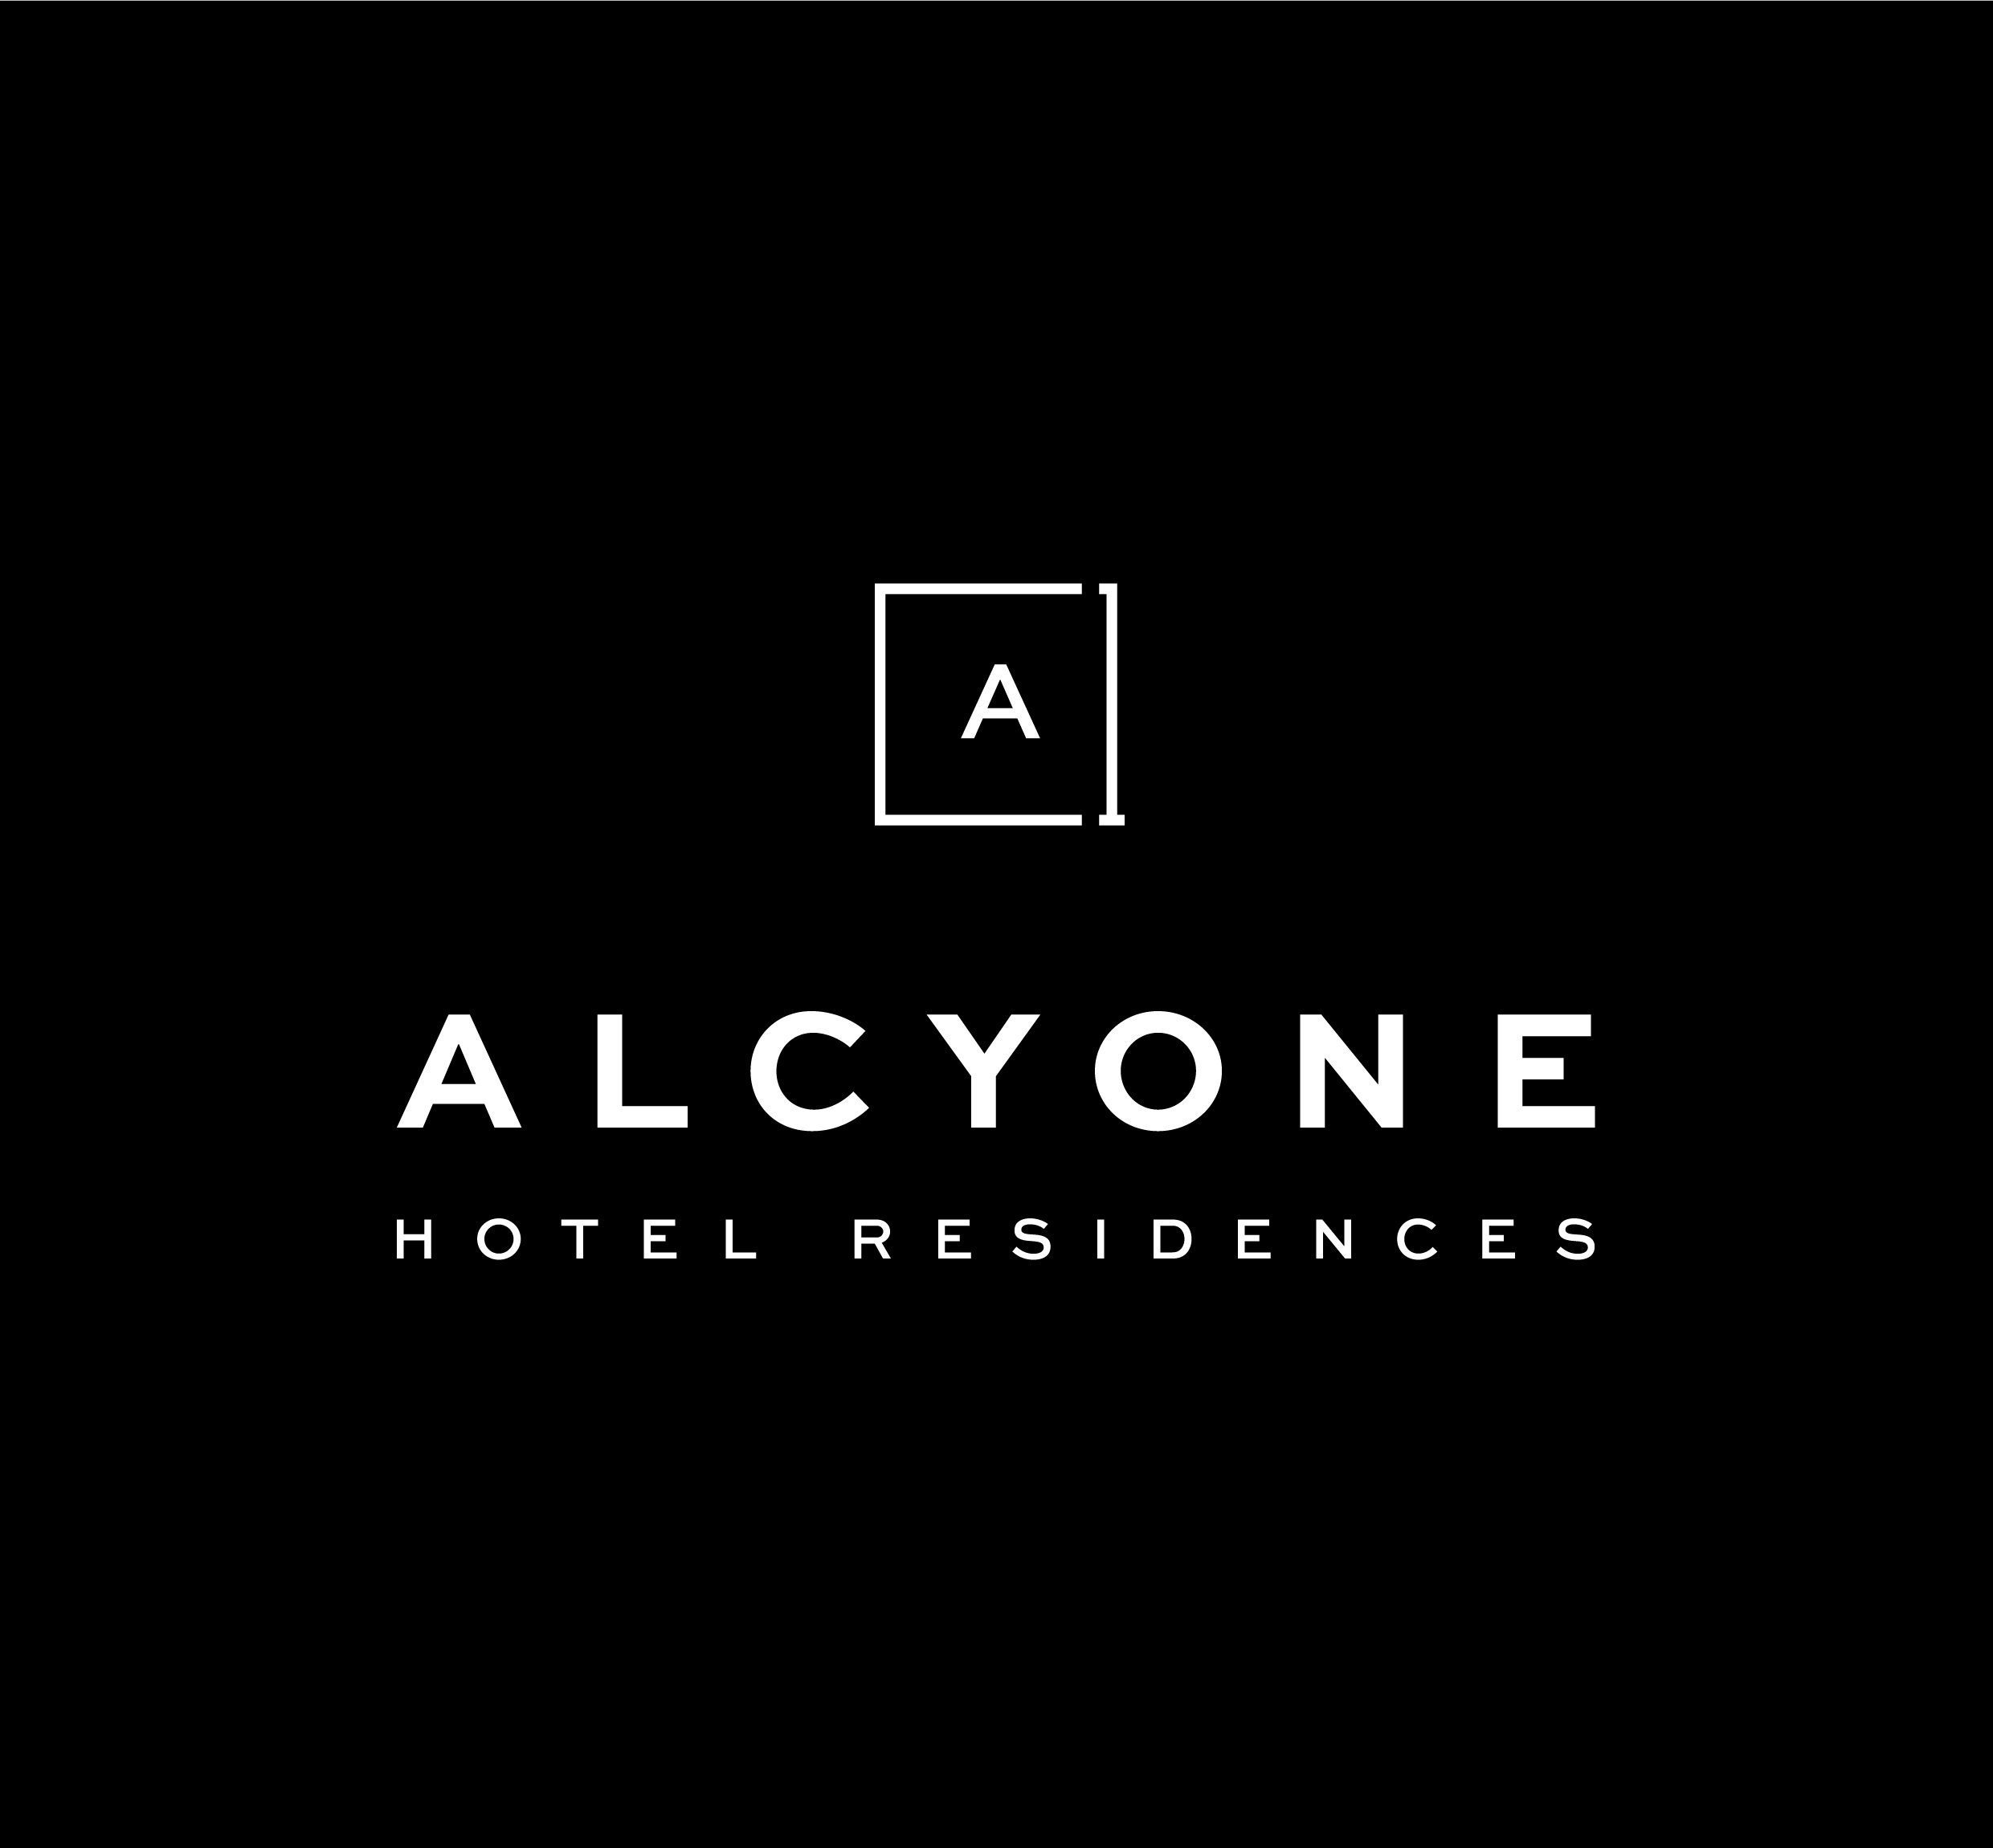 Alcyone Apartments: Member's Directory